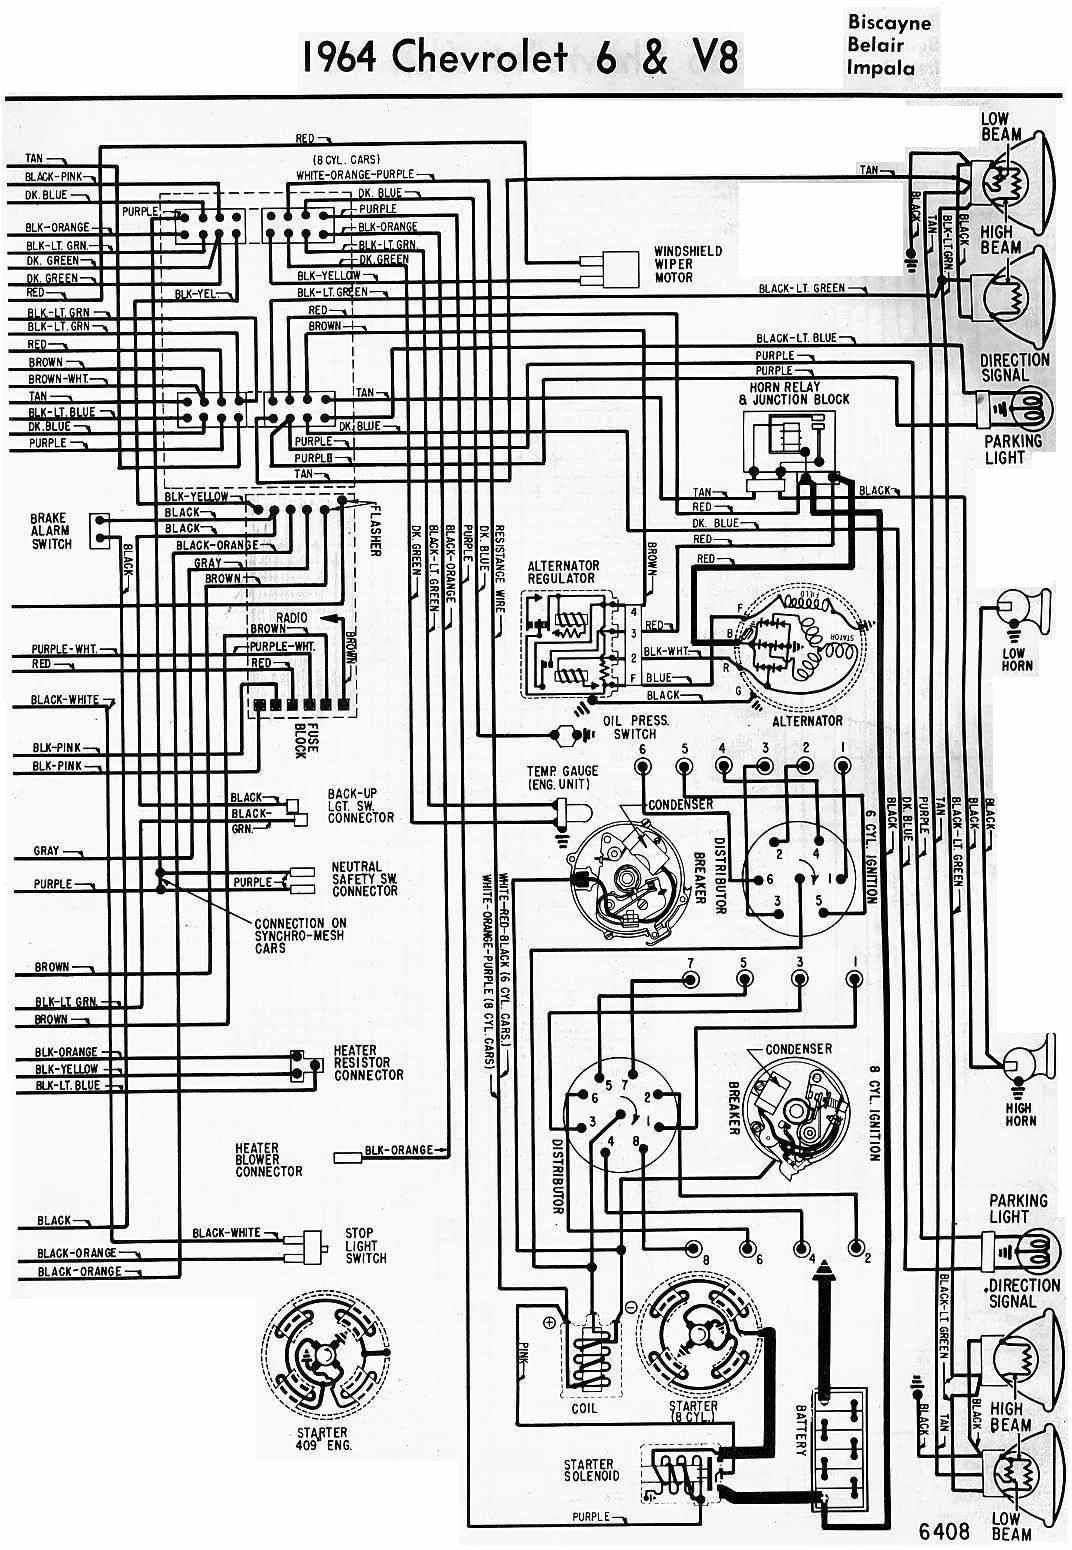 1964 F100 Wiring Harness Diy Enthusiasts Diagrams Ford Falcon Diagram Manifold 1969 Nova Rh Banyan Palace Com Econoline